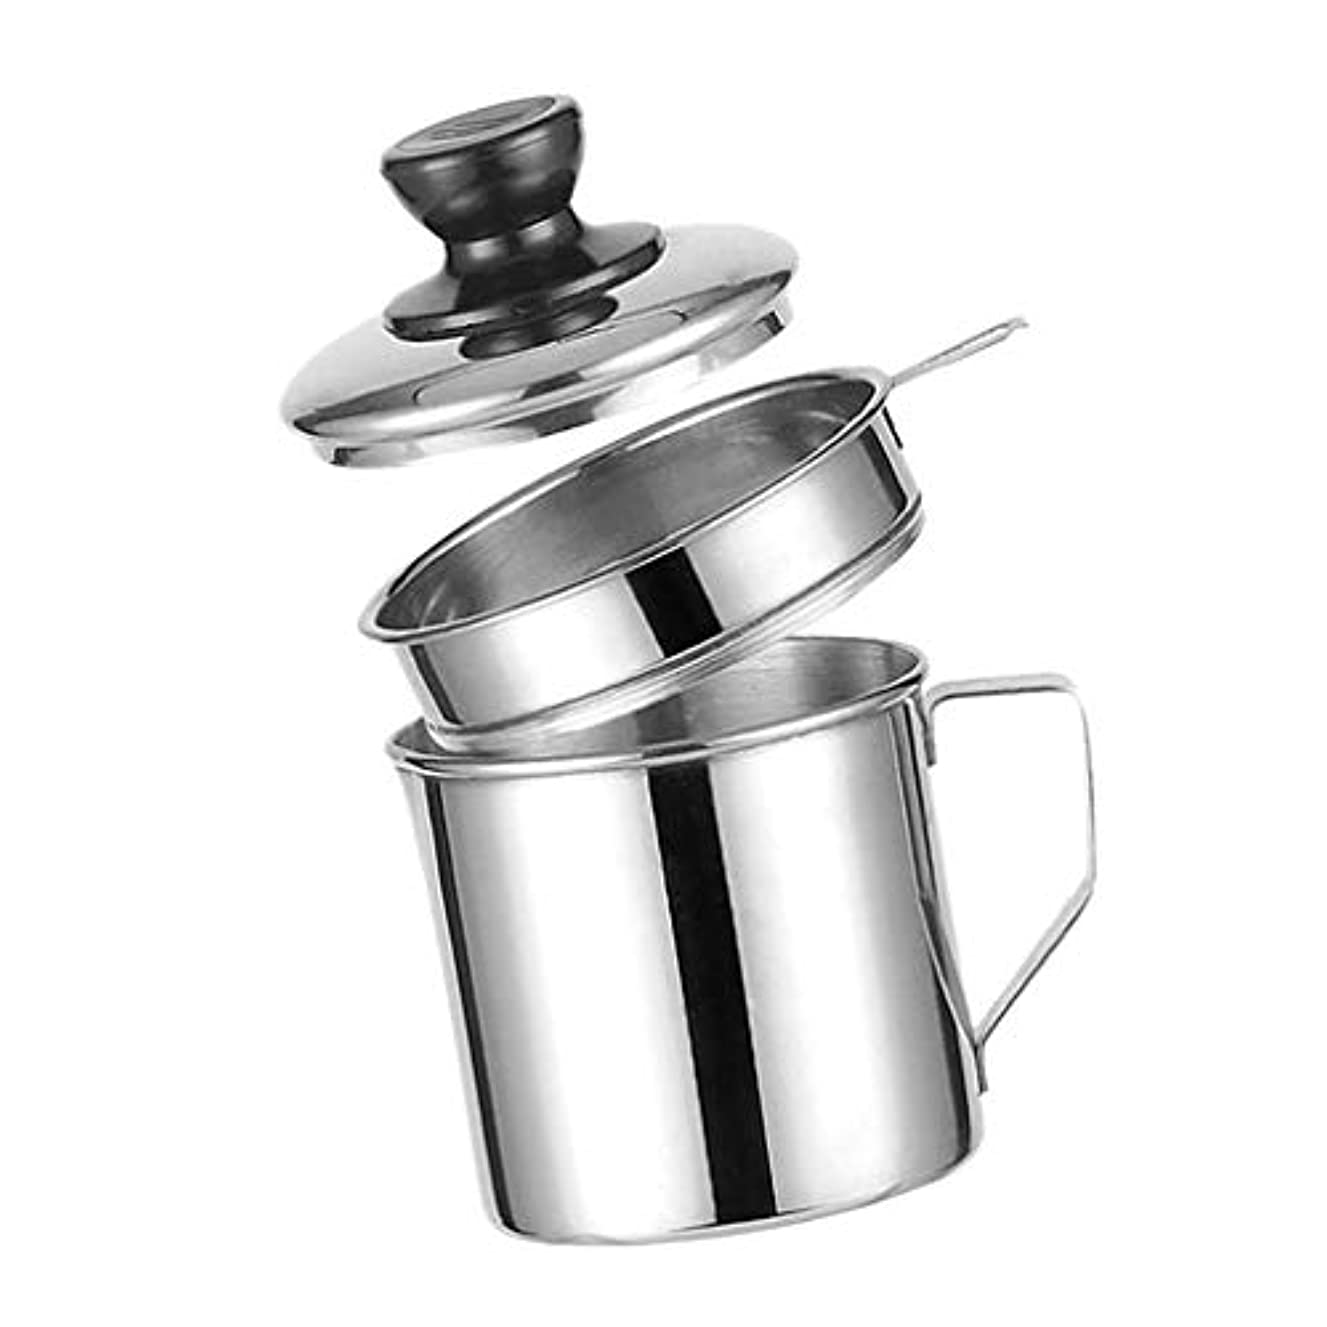 Prettyia Bacon Grease Keeper Container with Strainer, Stainless Steel Oil Storage Catcher Container, Grease Can for Kitchen Restaurant Use, Silver - 14cm